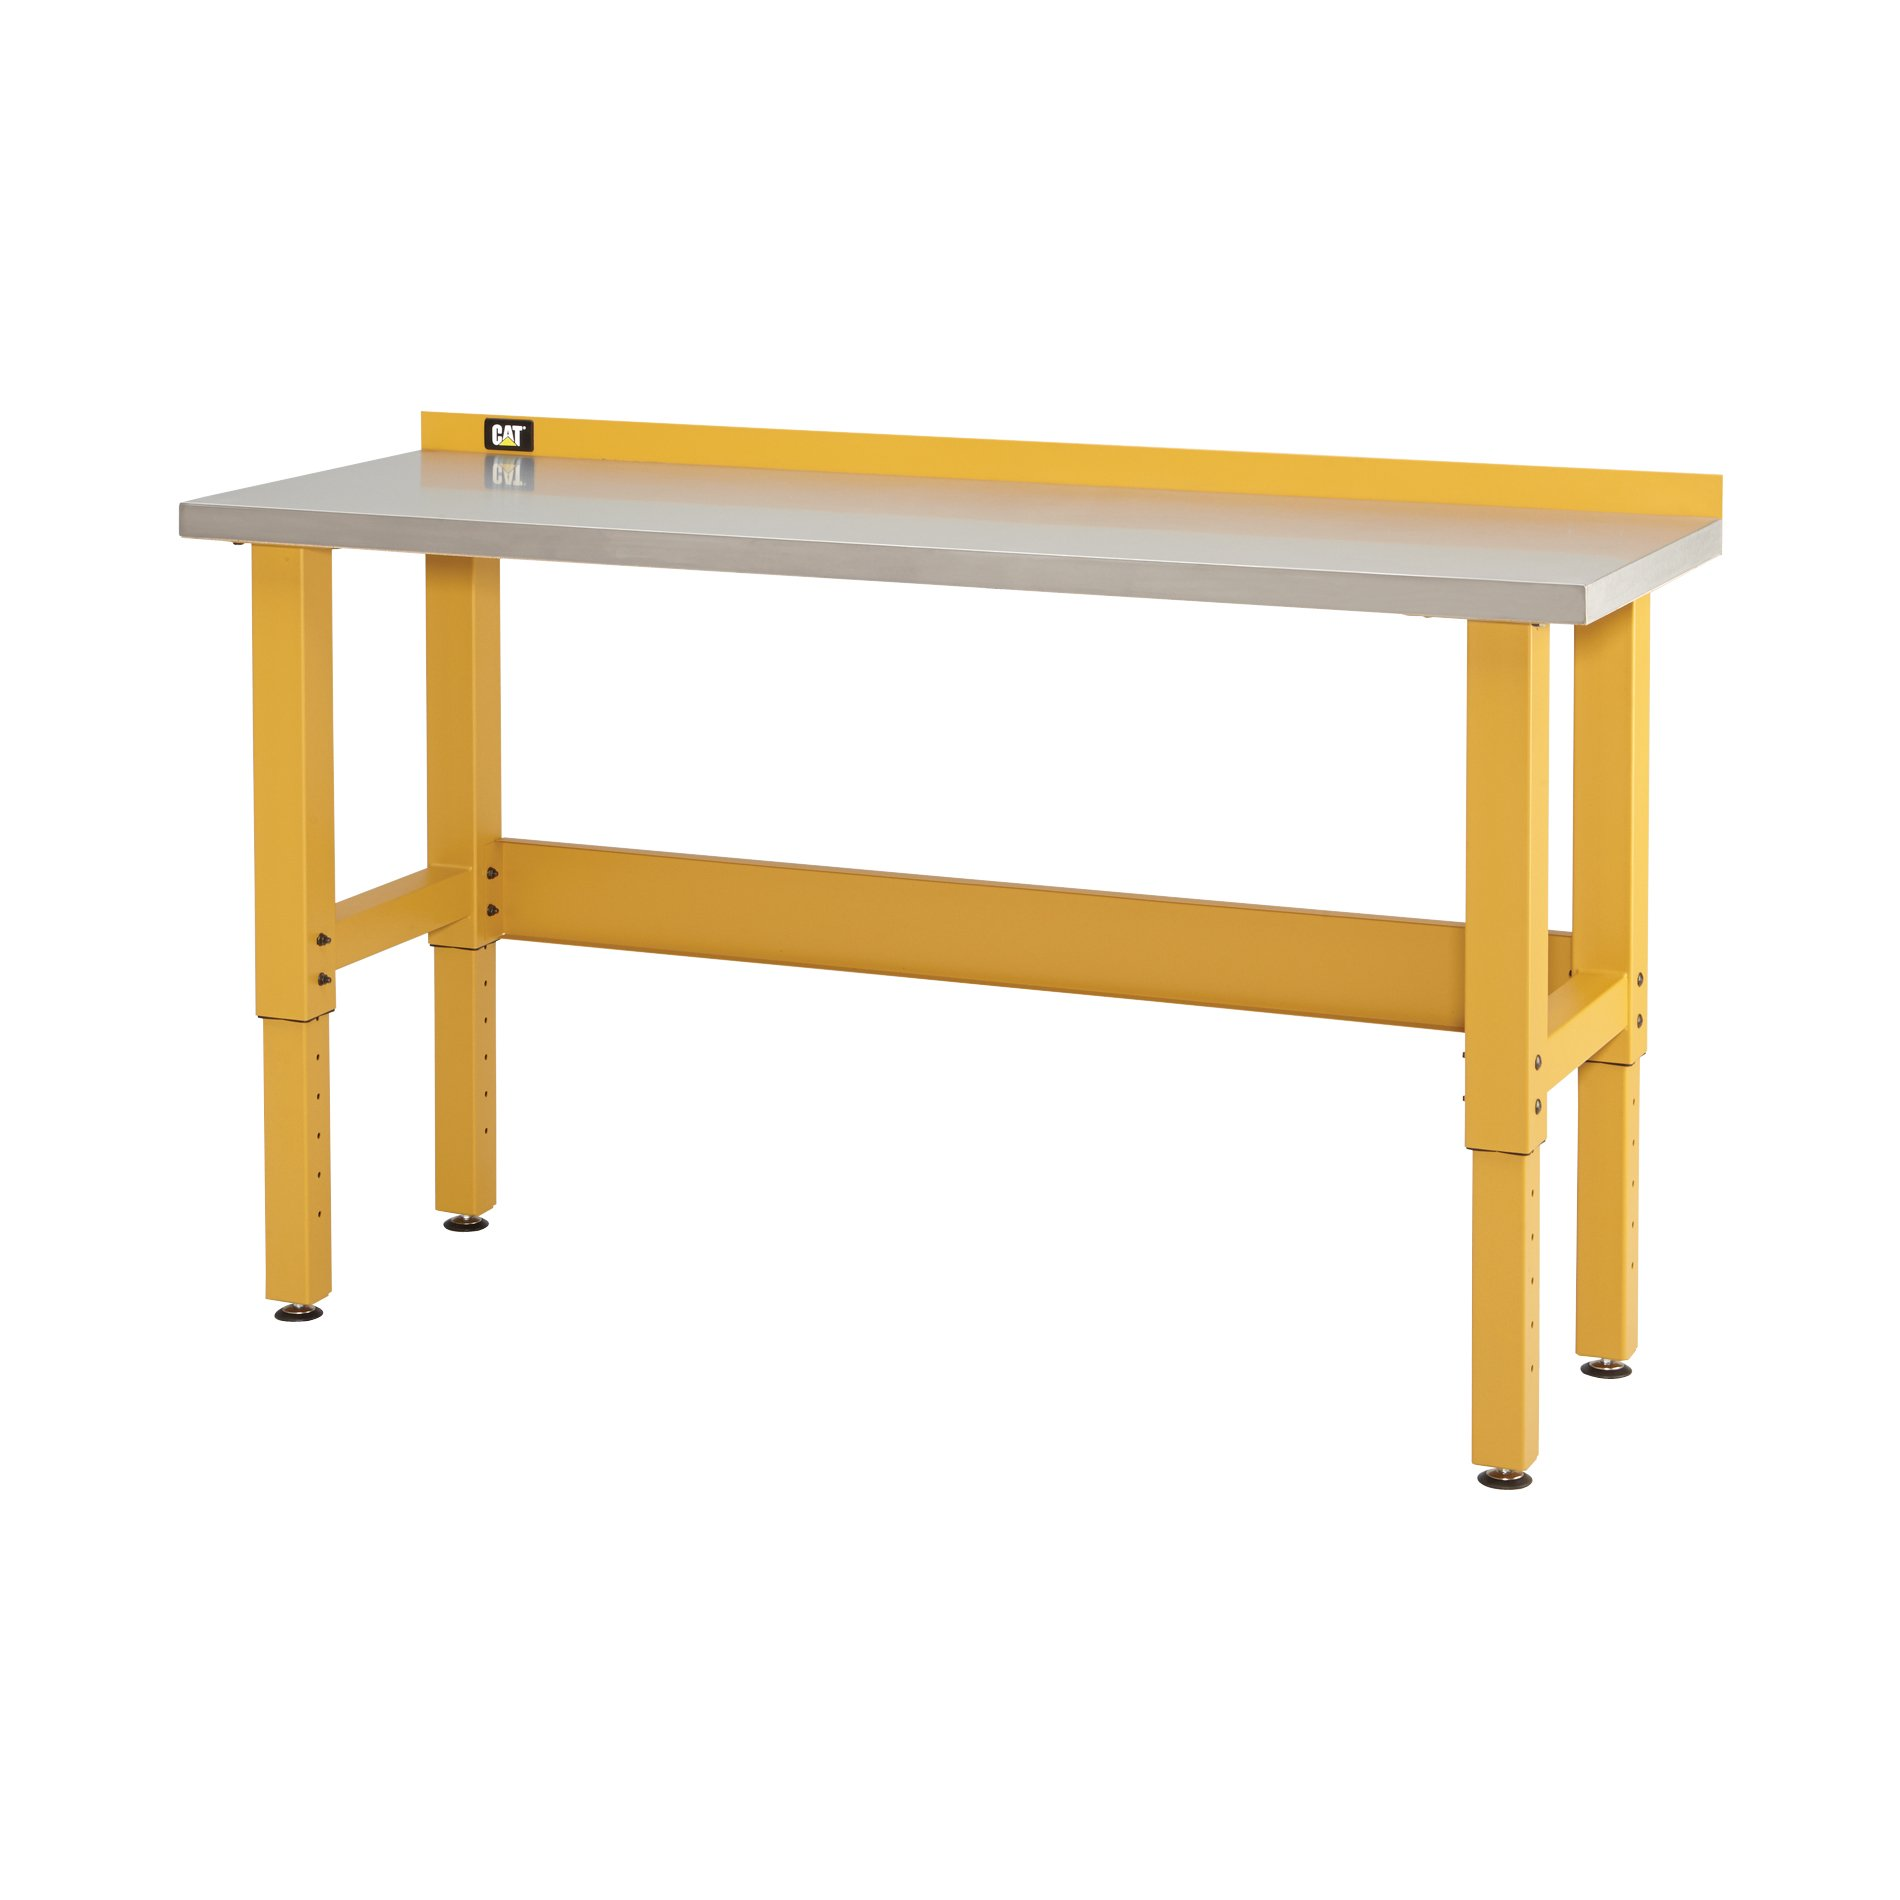 Cat 6-Foot Stainless Steel Workbench - Designed, Engineered & Assembled In the USA